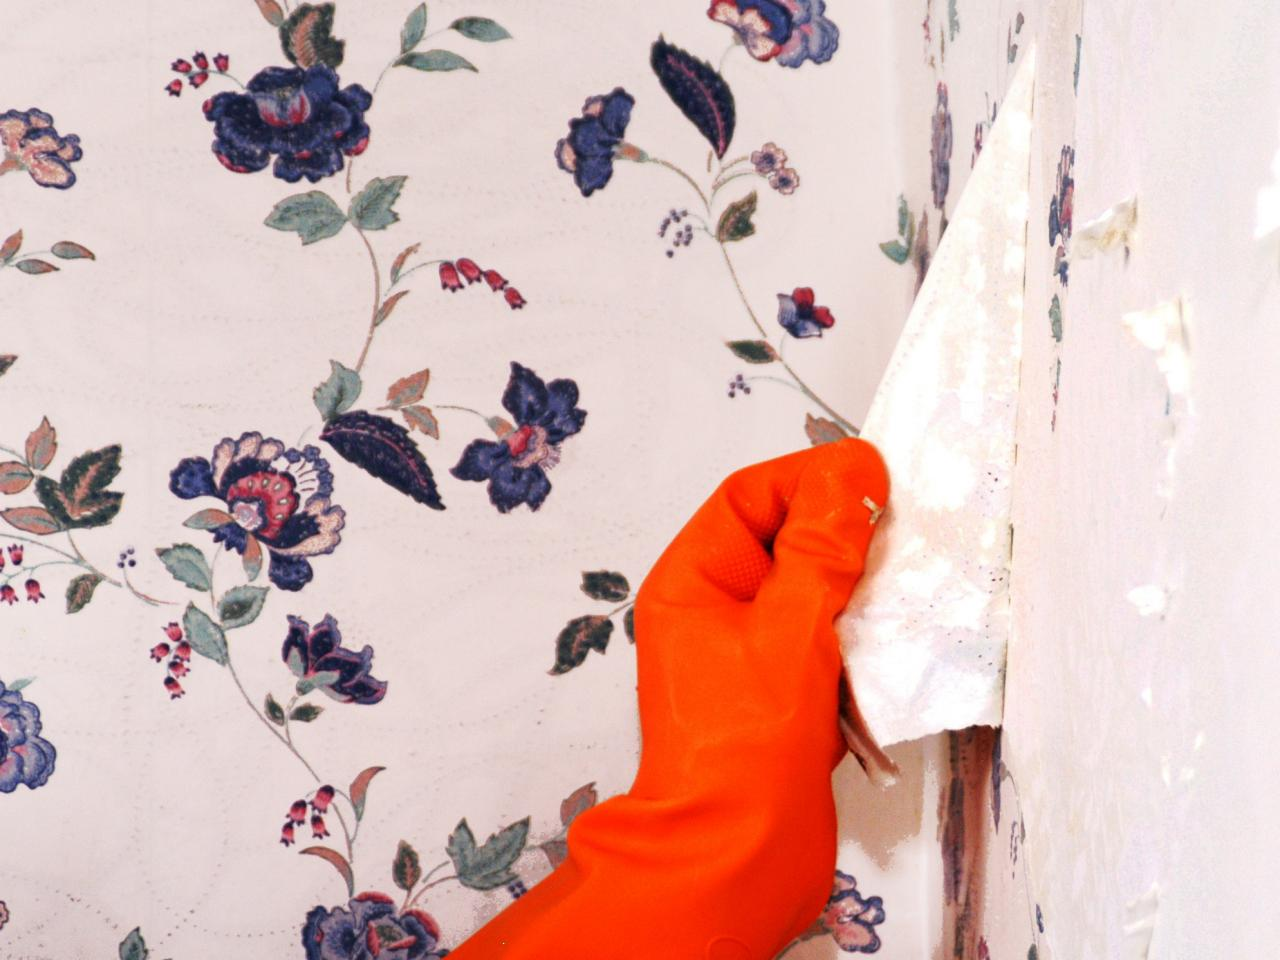 Wallpaper Removal Solvent